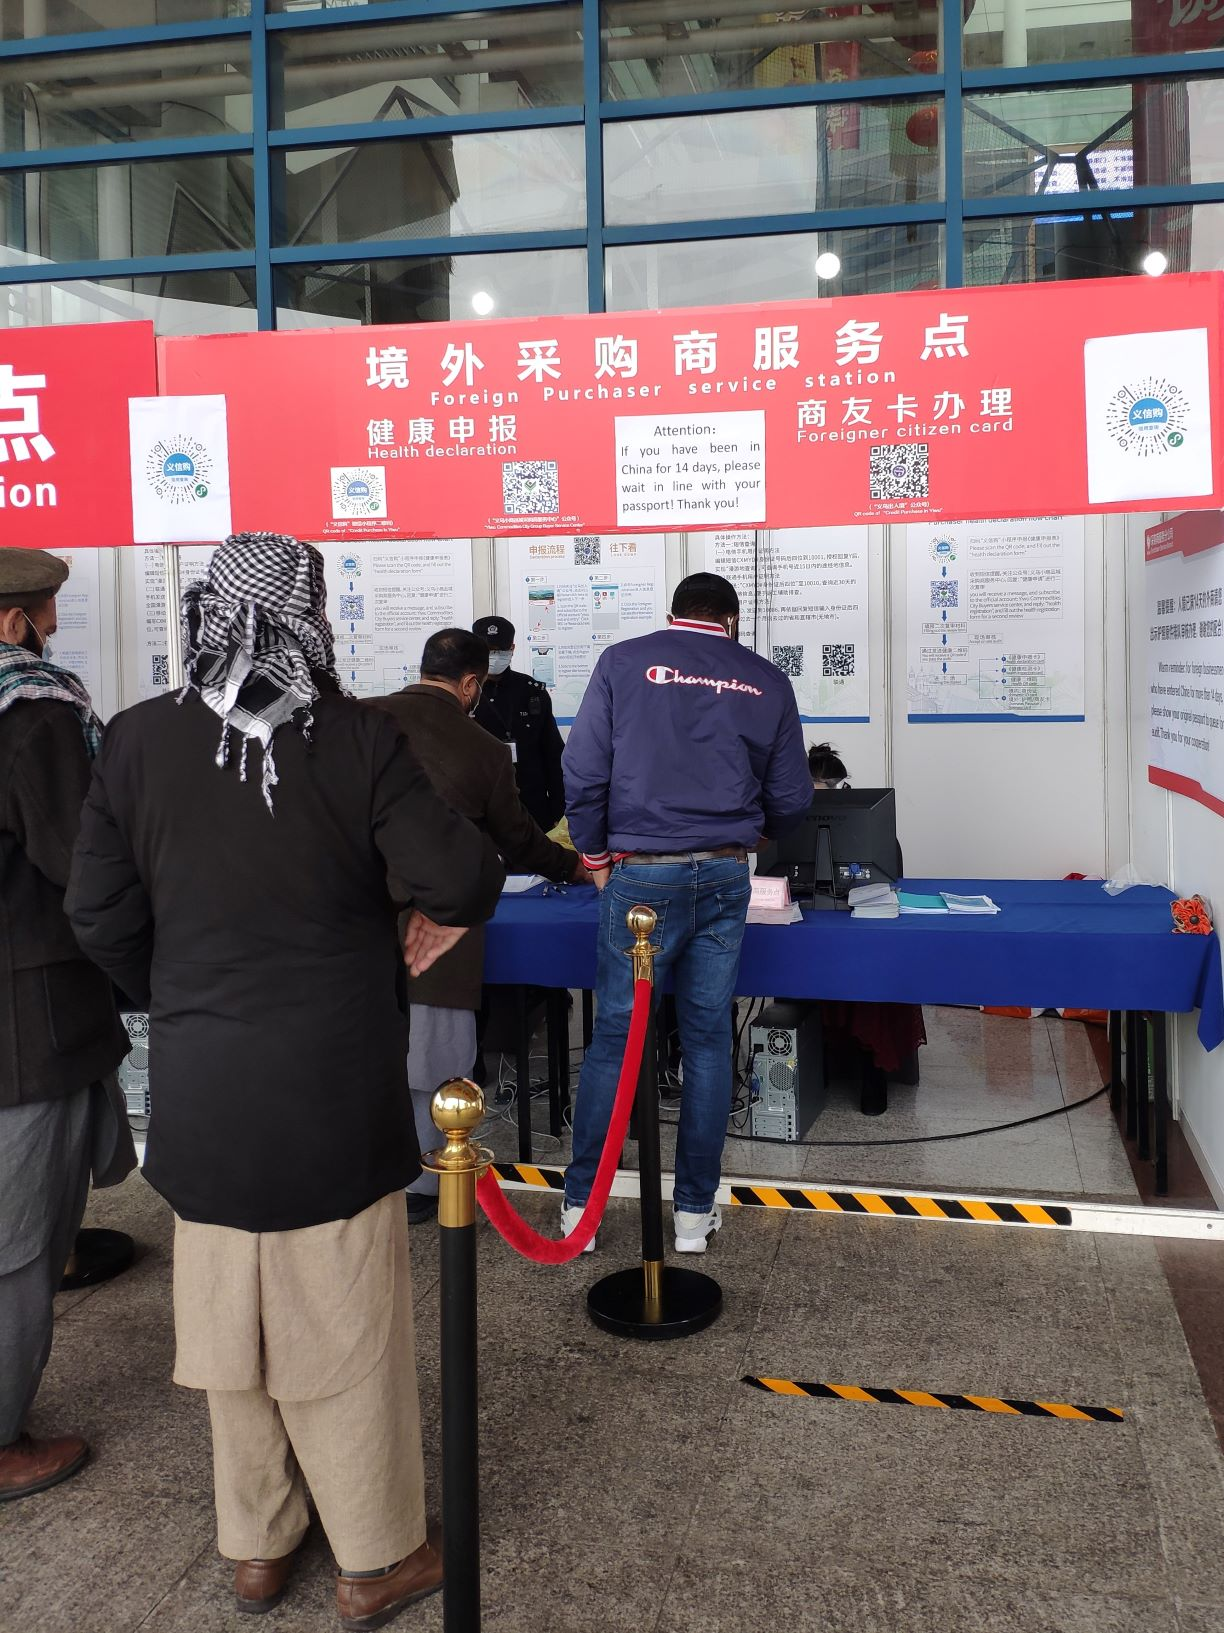 Foreign visitors have over-14-day-stay in mainland China are allowed to enter Yiwu market, after verified as healthy.